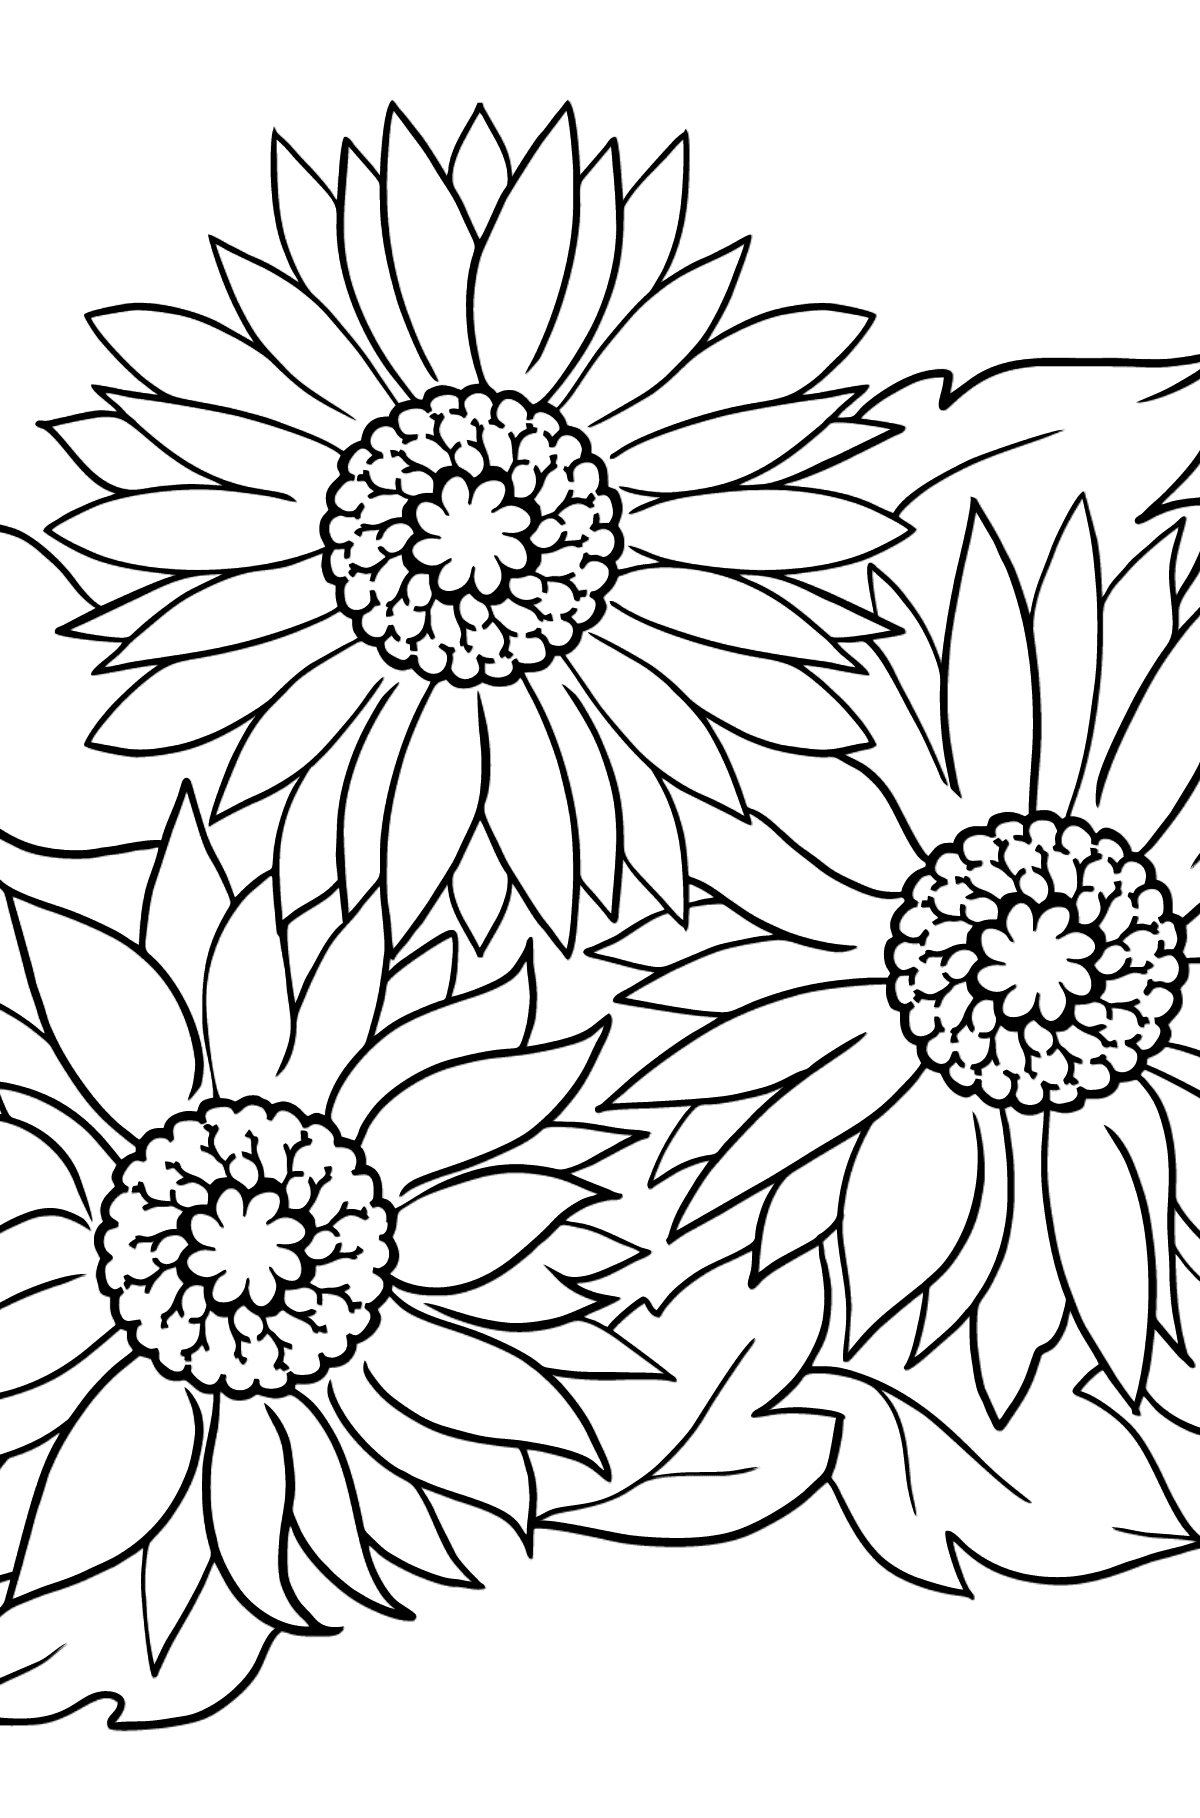 Flower Coloring Page - A Blue Gerbera - Coloring Pages for Kids